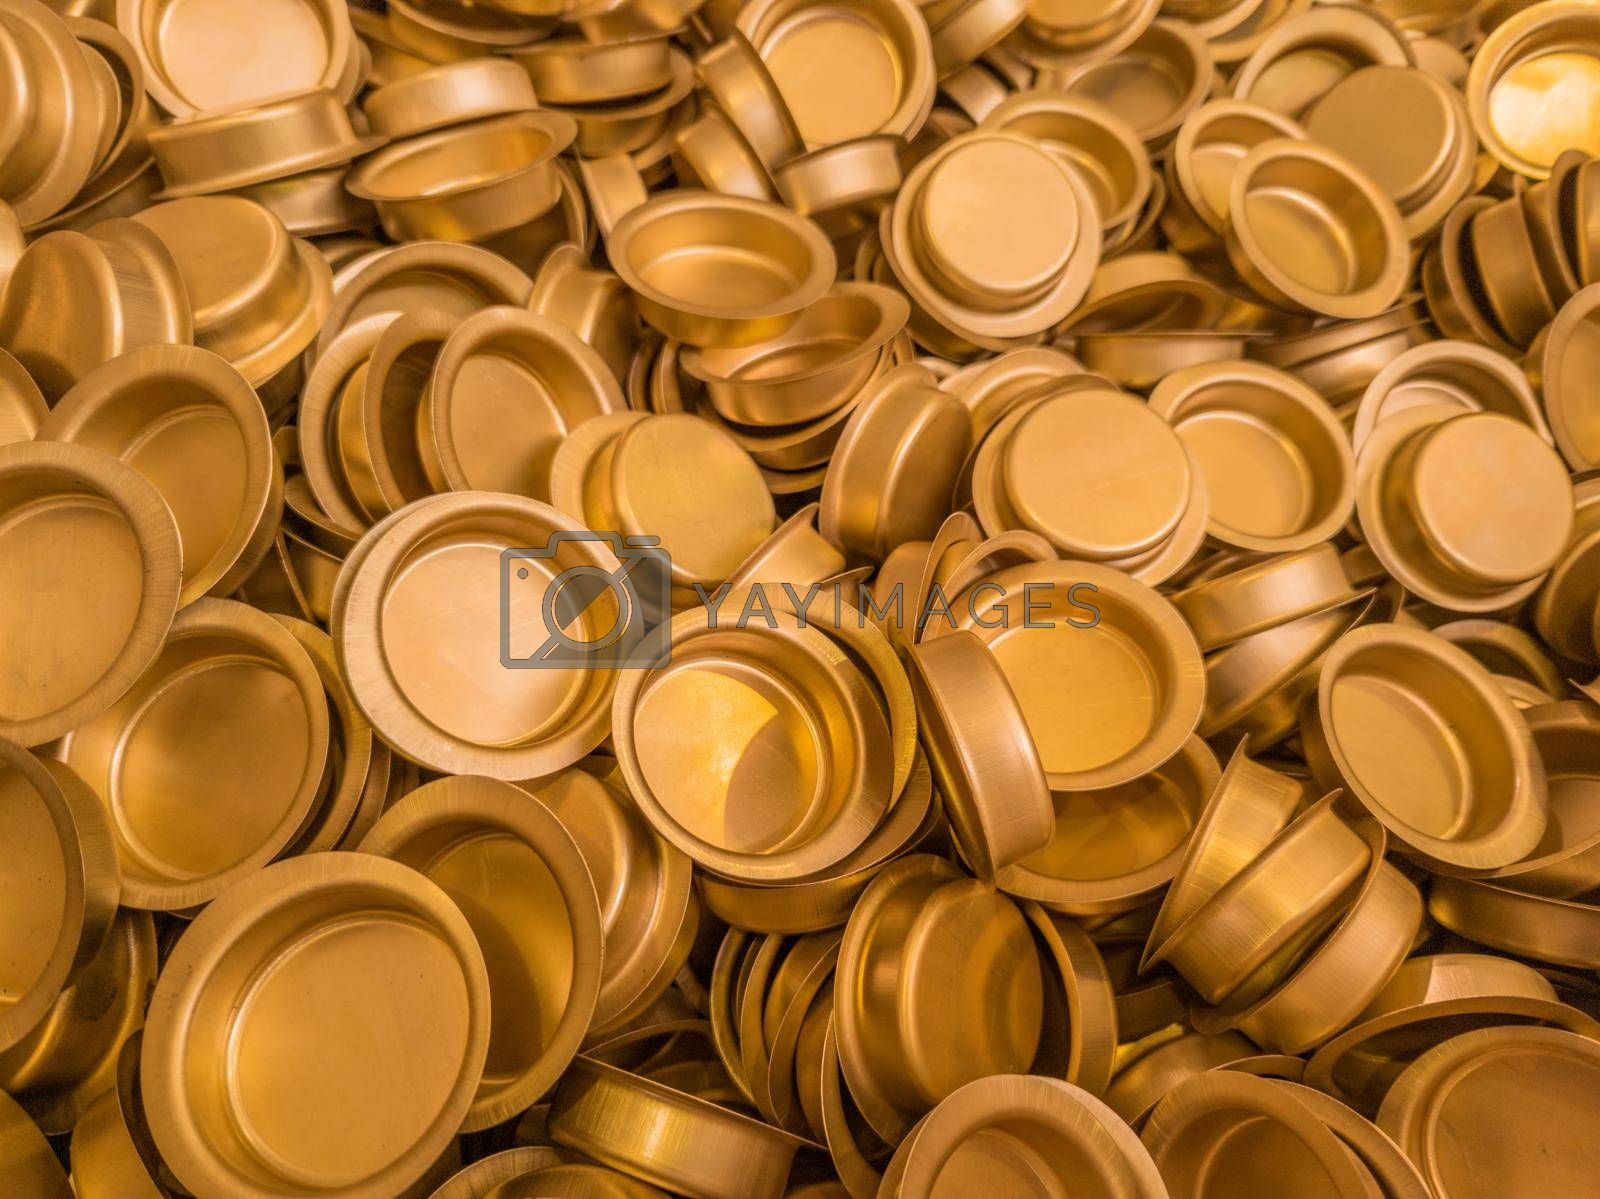 A pile of stamped thin sheet brass hat-shaped semimanufatures, full frame industrial manufacturing background. Closeup with selective focus and blur